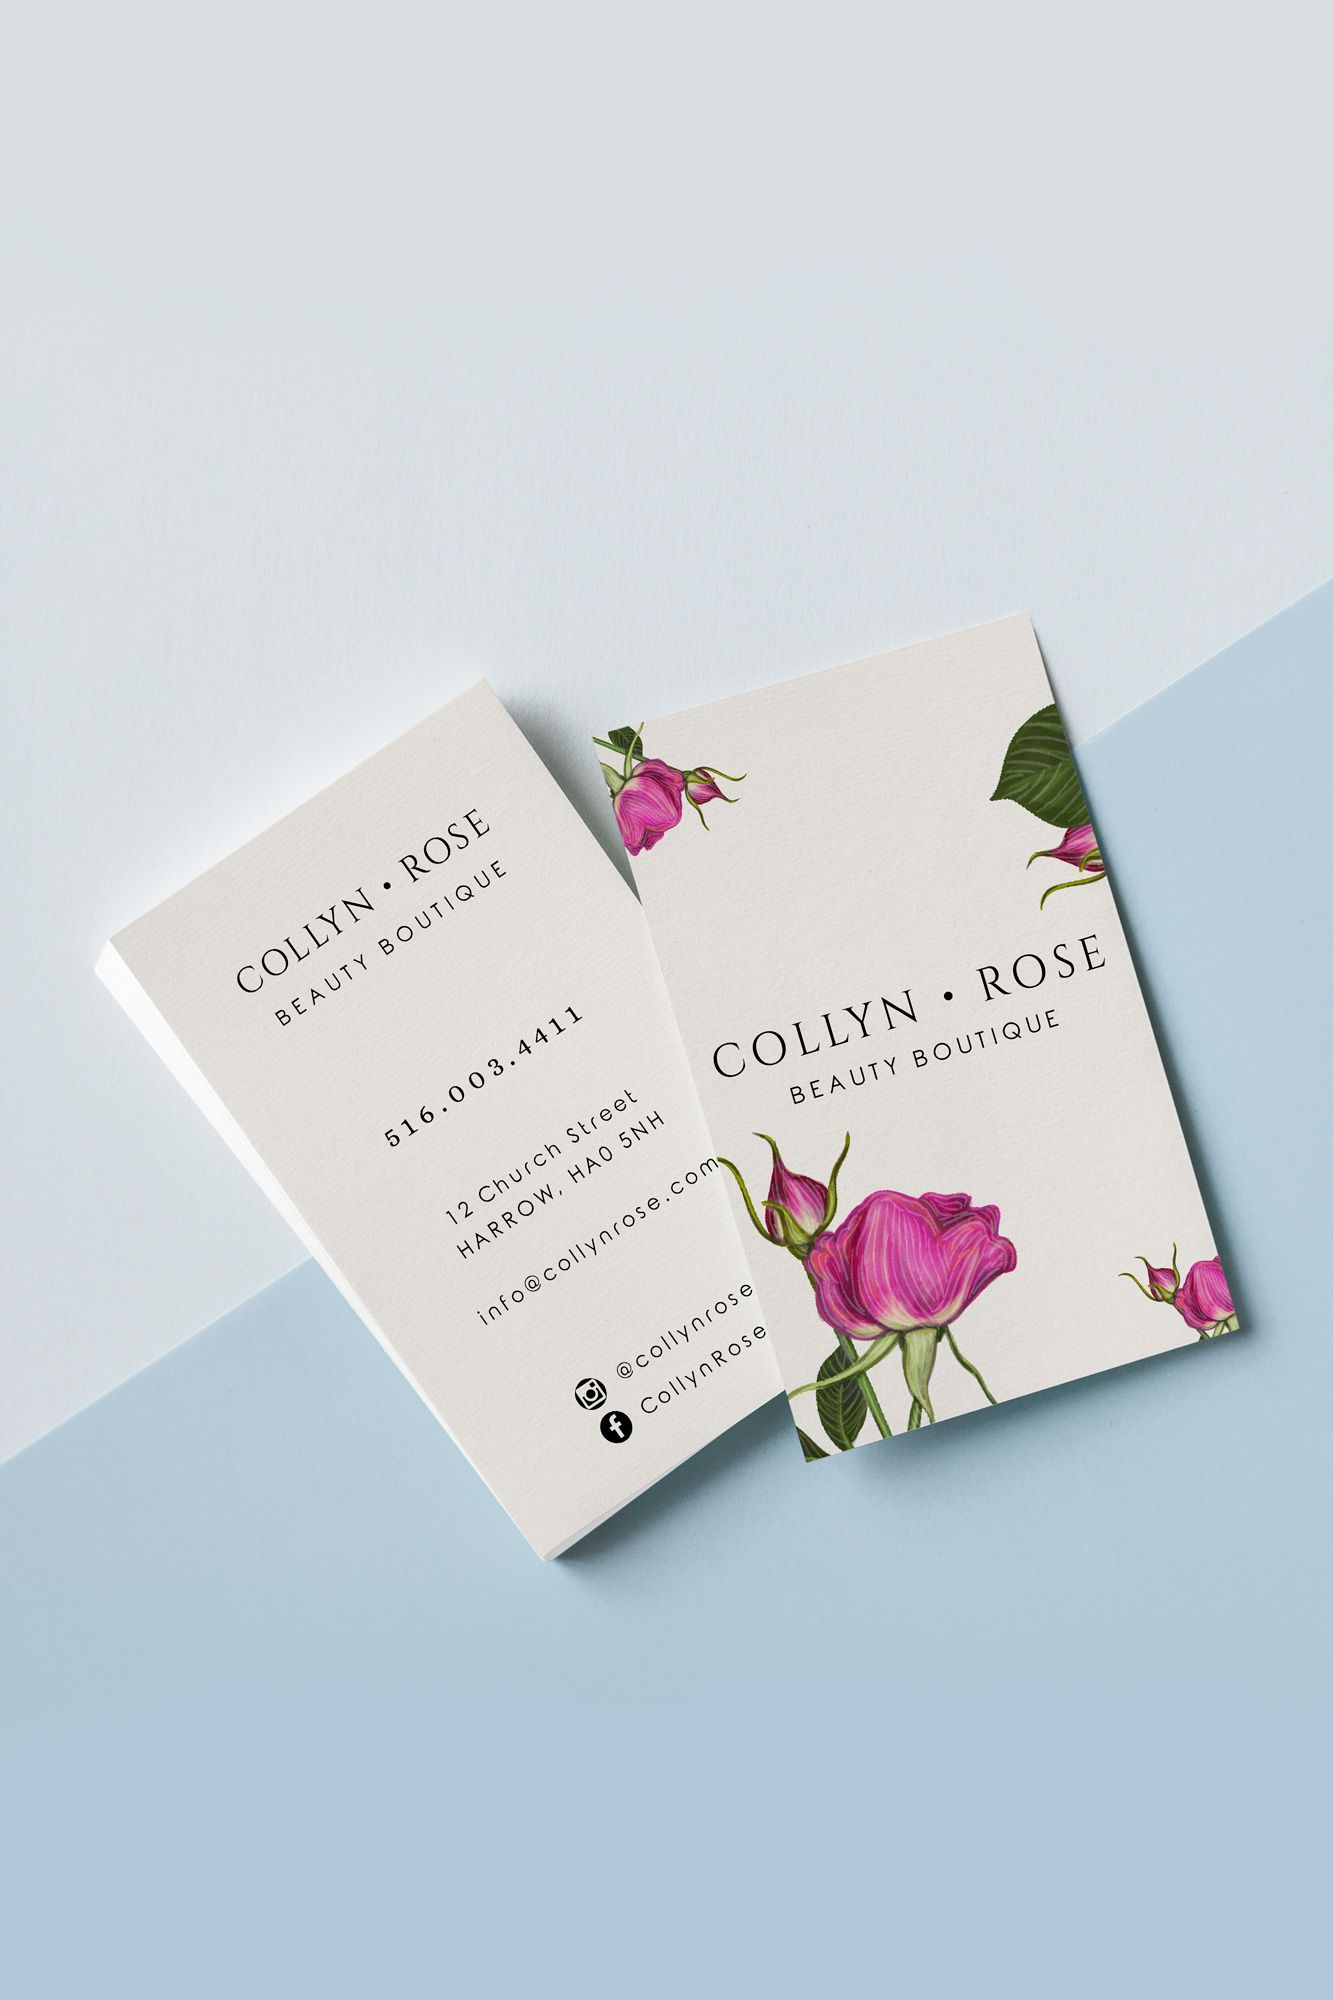 Rose Business Card Template Editable Business Cards Name Etsy Florist Business Card Business Card Design Creative Business Card Template